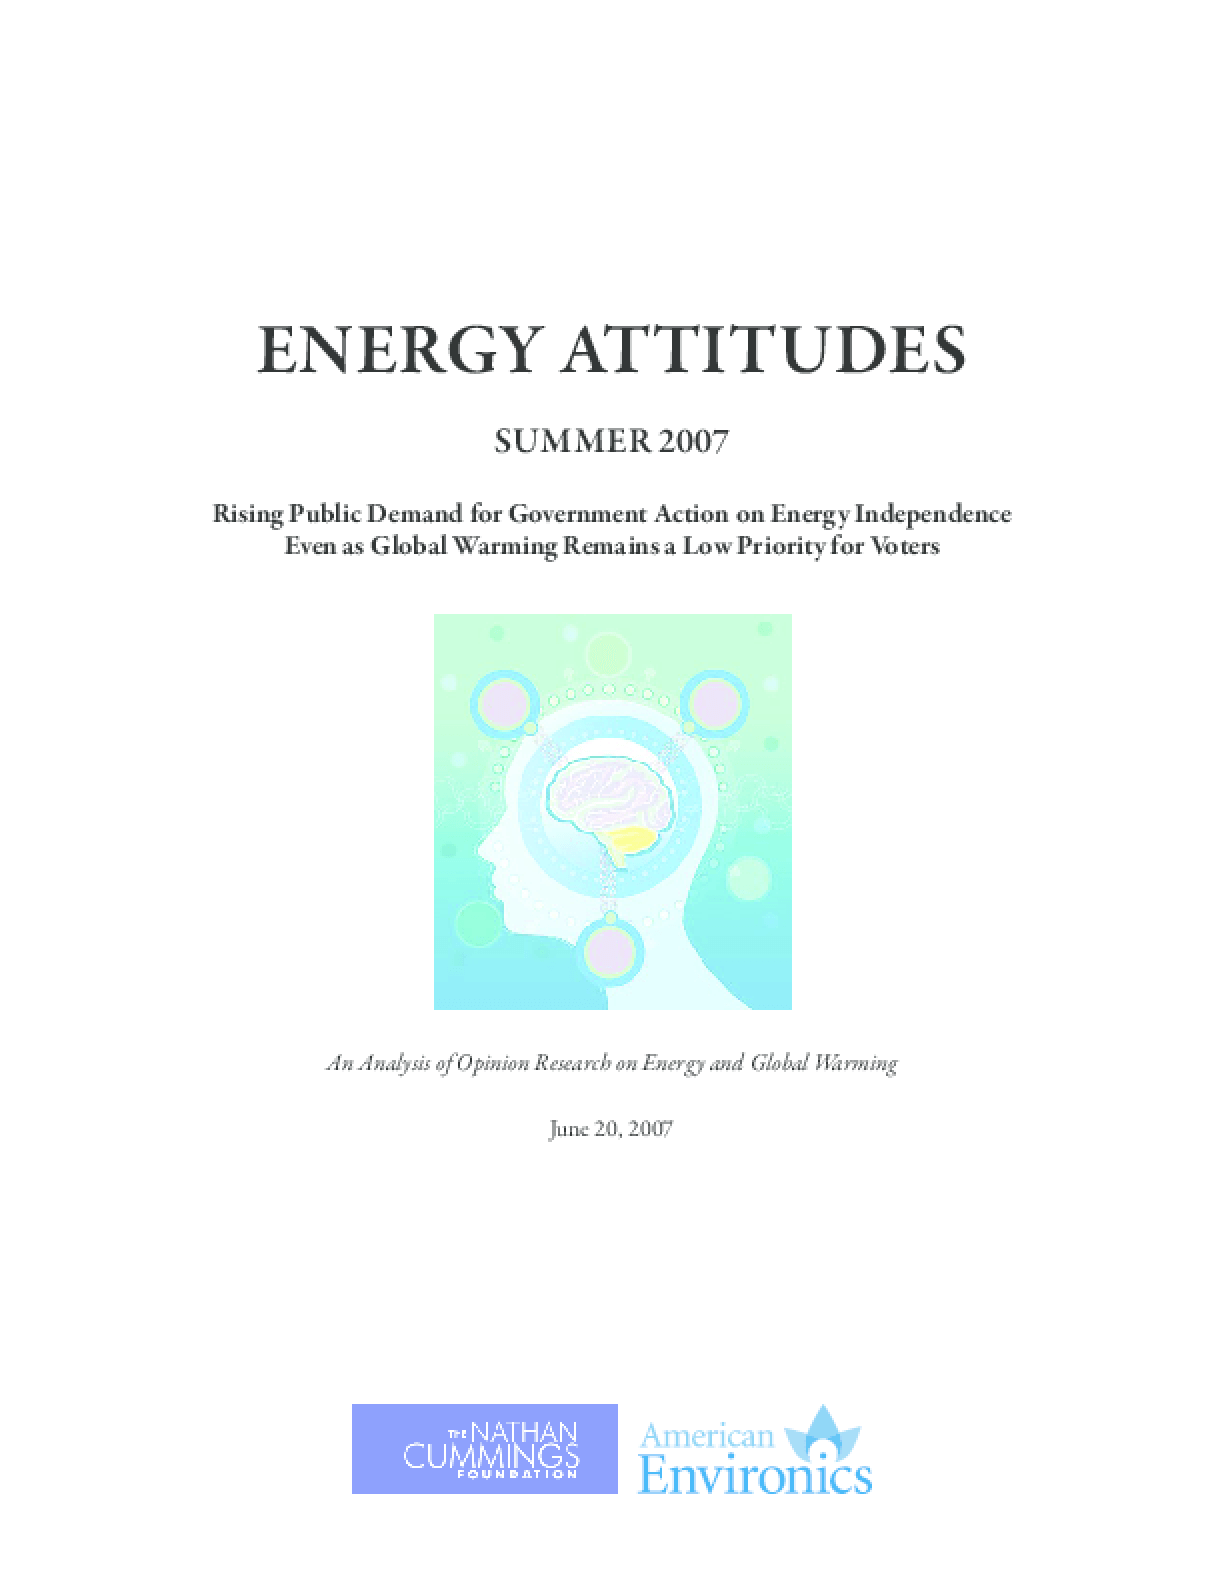 Energy Attitudes: An Analysis of Opinion Research on Energy and Global Warming